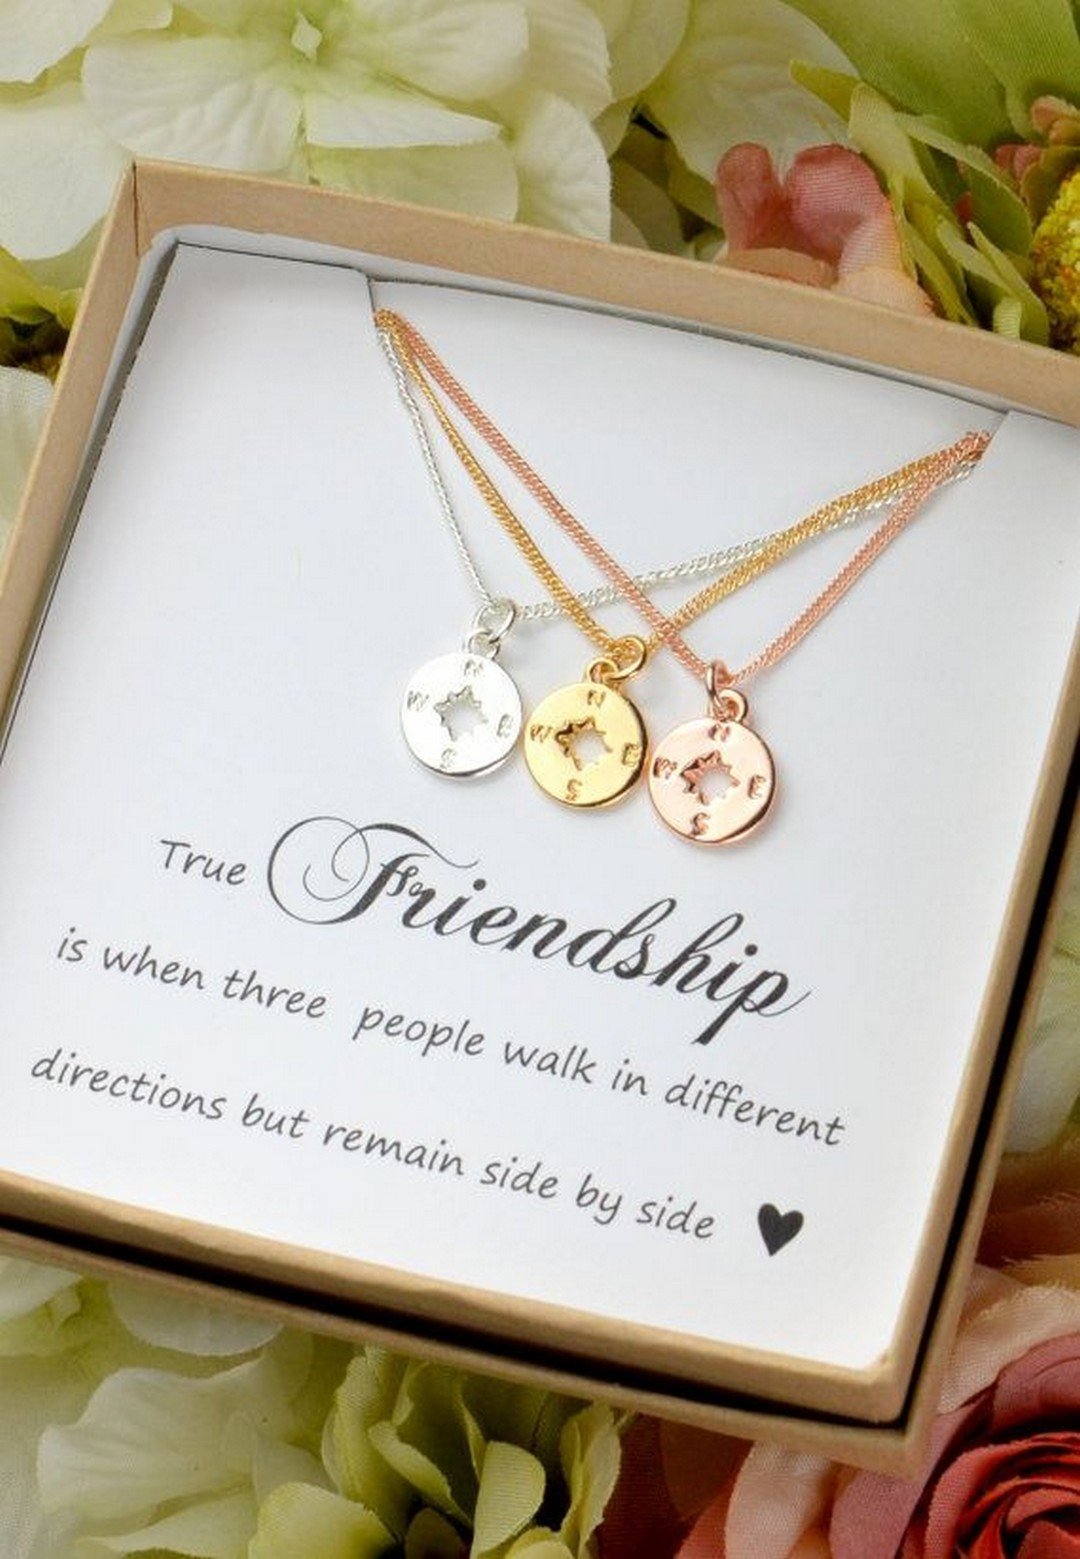 Best ideas about Unique Gifts For Friends Birthday . Save or Pin Beautiful And Fun Best Friend Gifts Ideas 9 echitecture Now.